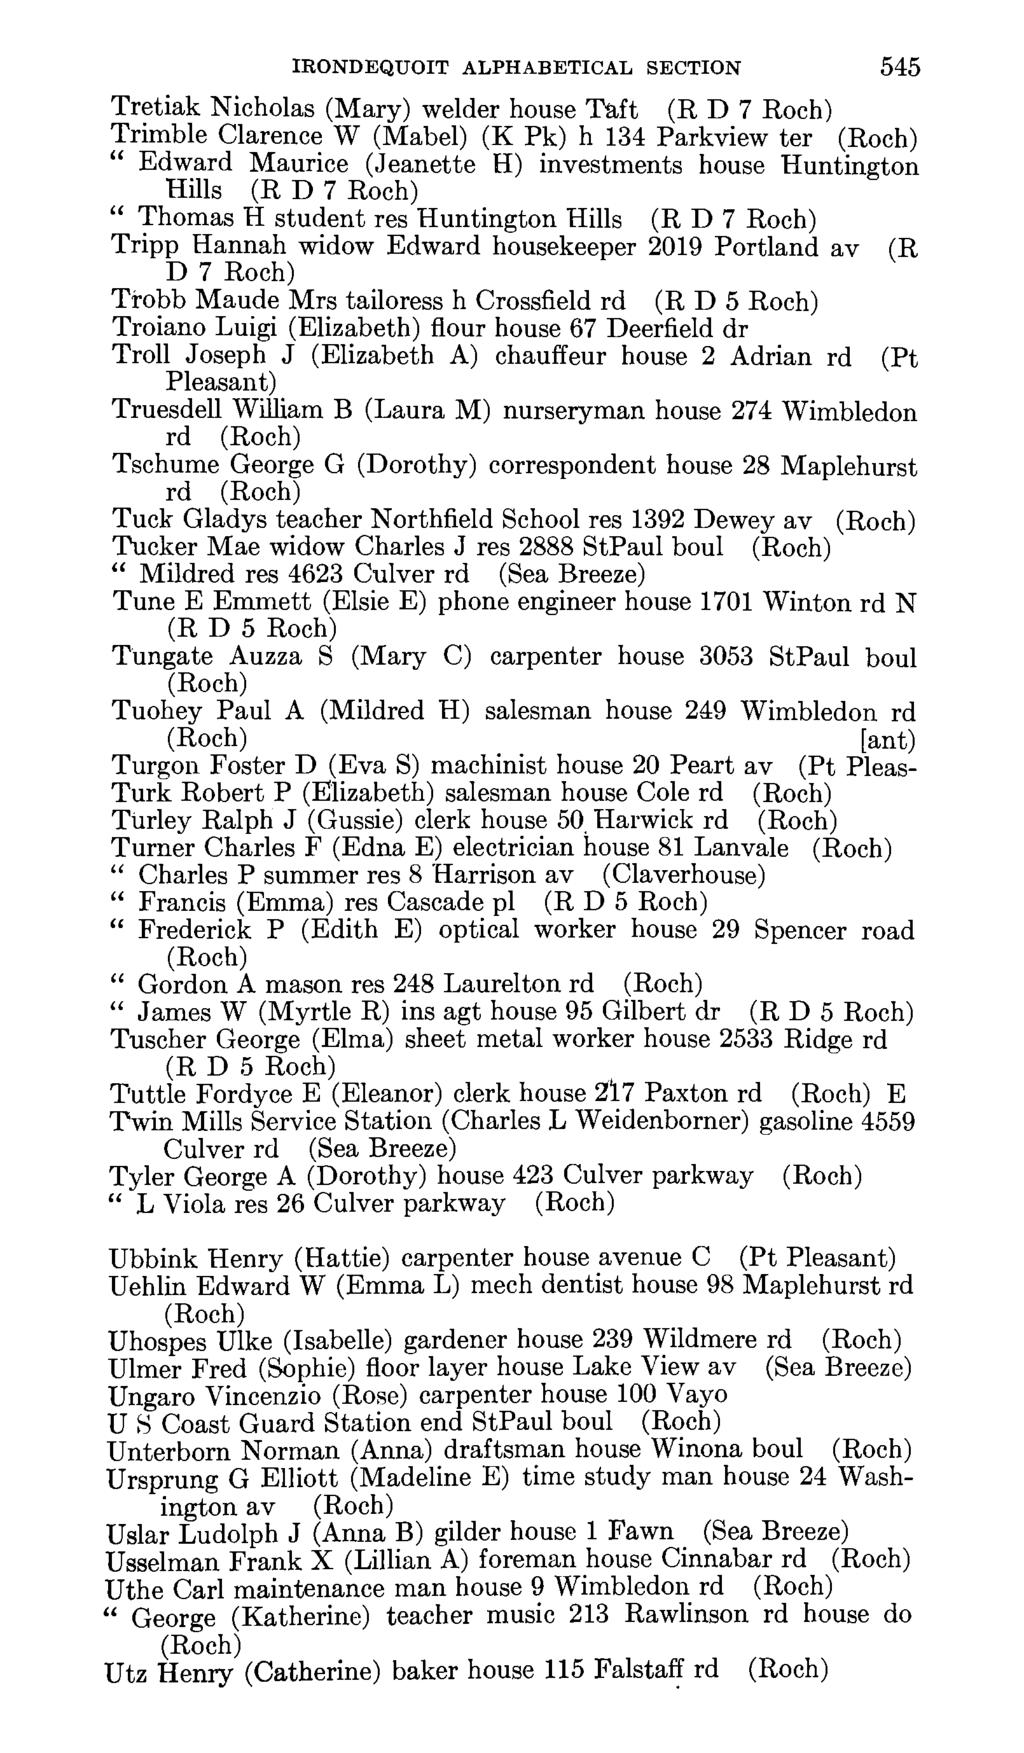 IRONDEQUOIT ALPHABETICAL SECTION 545 Tretiak Nicholas (Mary) welder house Taft (R D 7 Trimble Clarence W (Mabel) (K Pk) h 134 Parkview ter Edward Maurice (Jeanette H) investments house Huntington